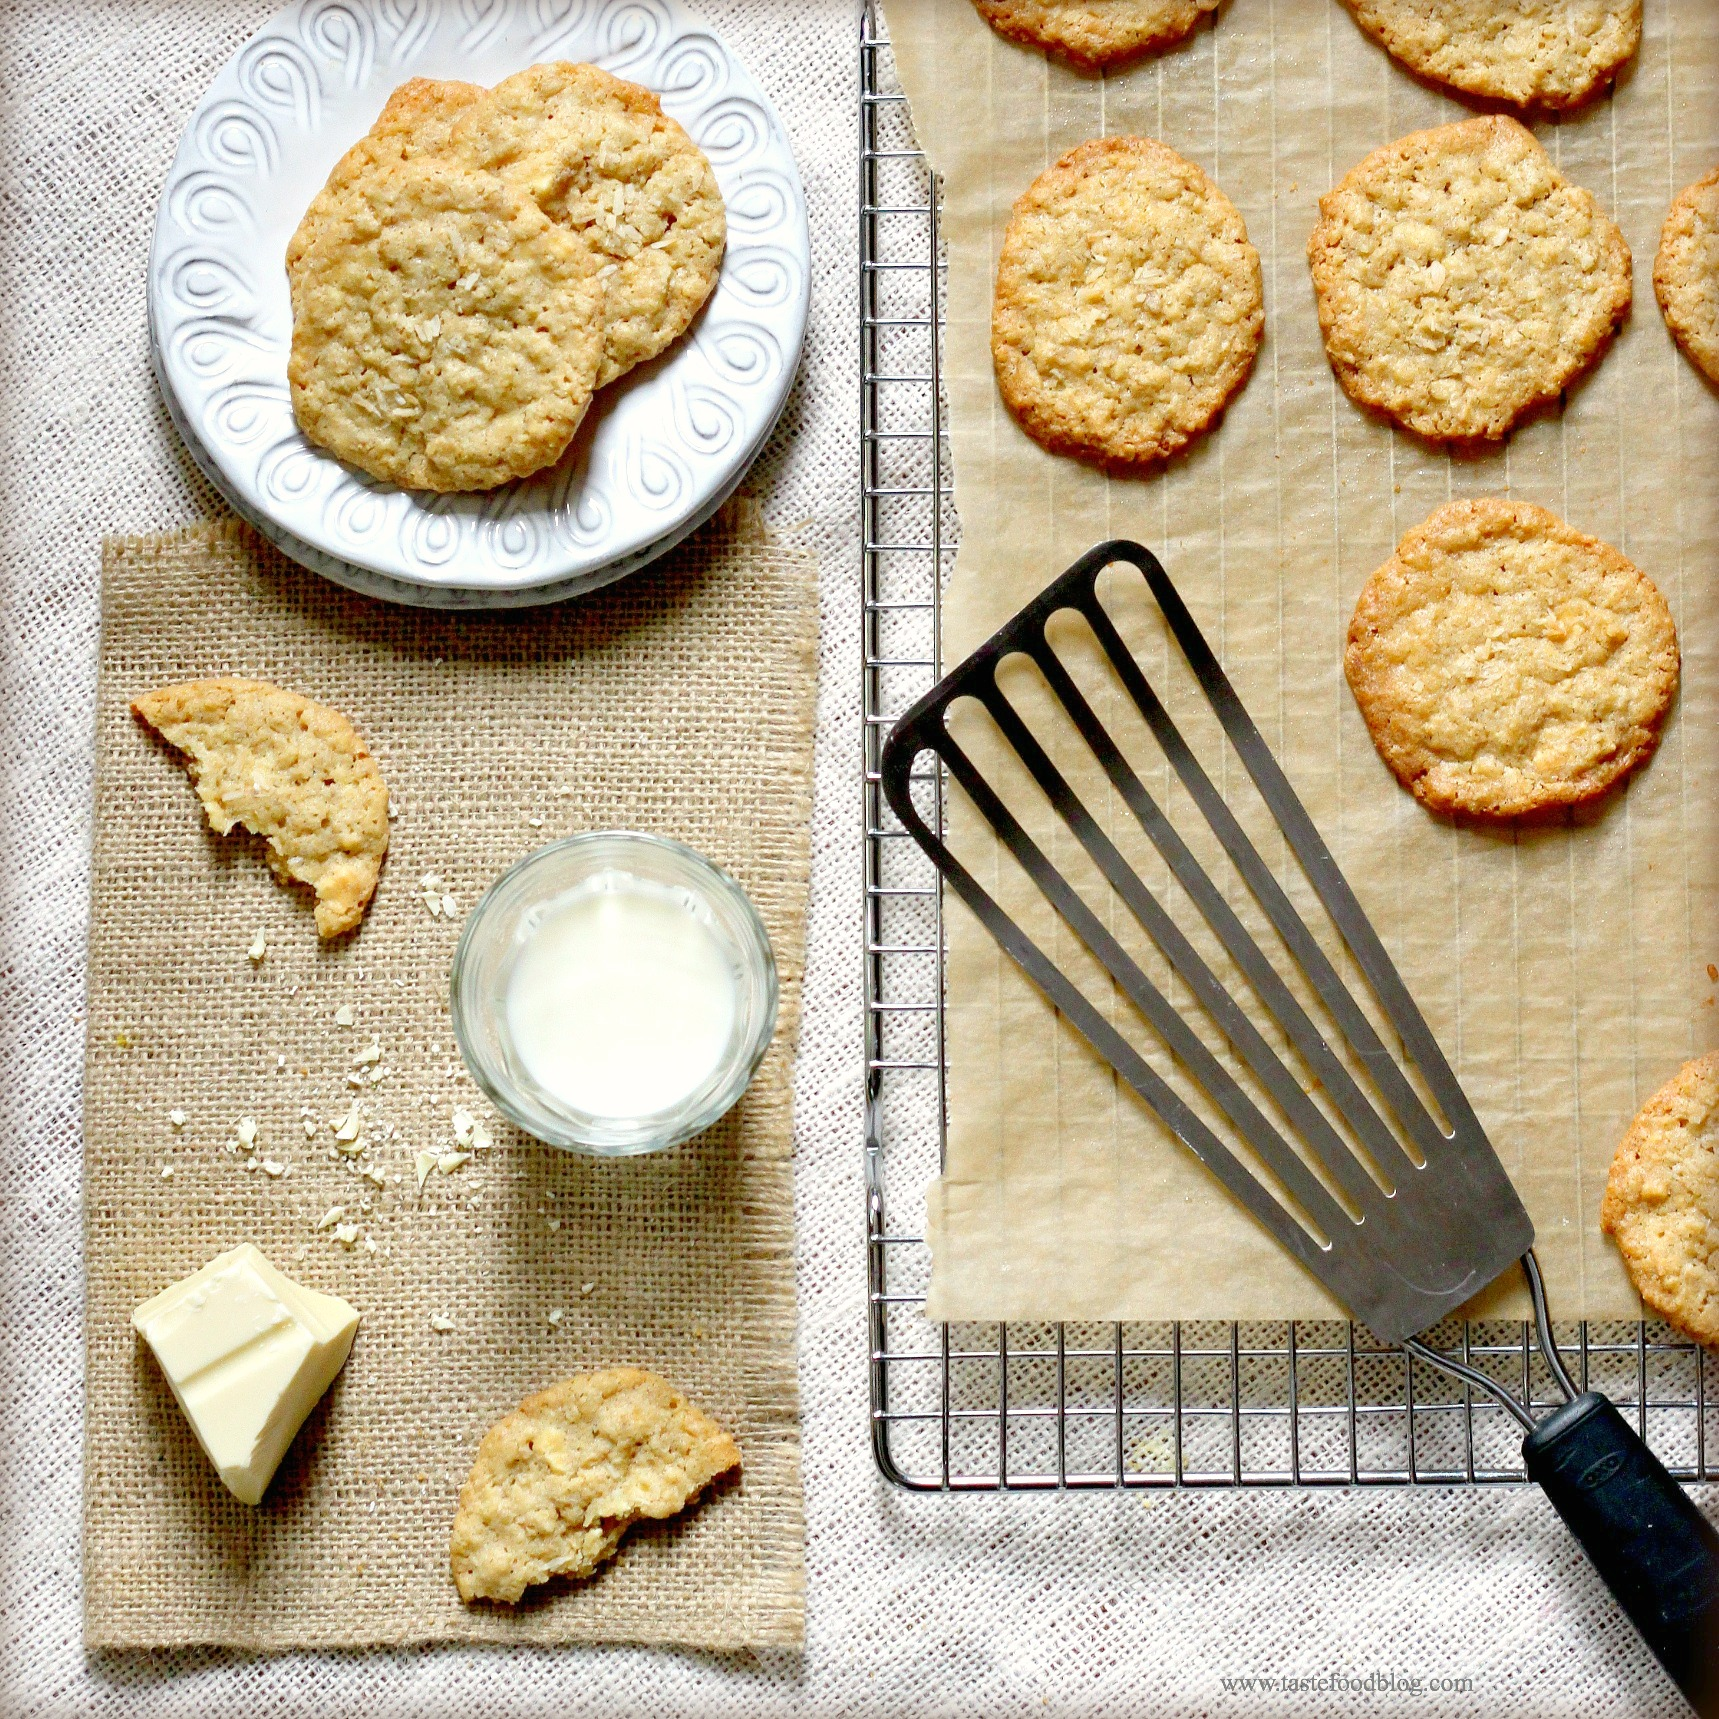 Home Baking: White Chocolate and Coconut Oatmeal Cookies | TasteFood